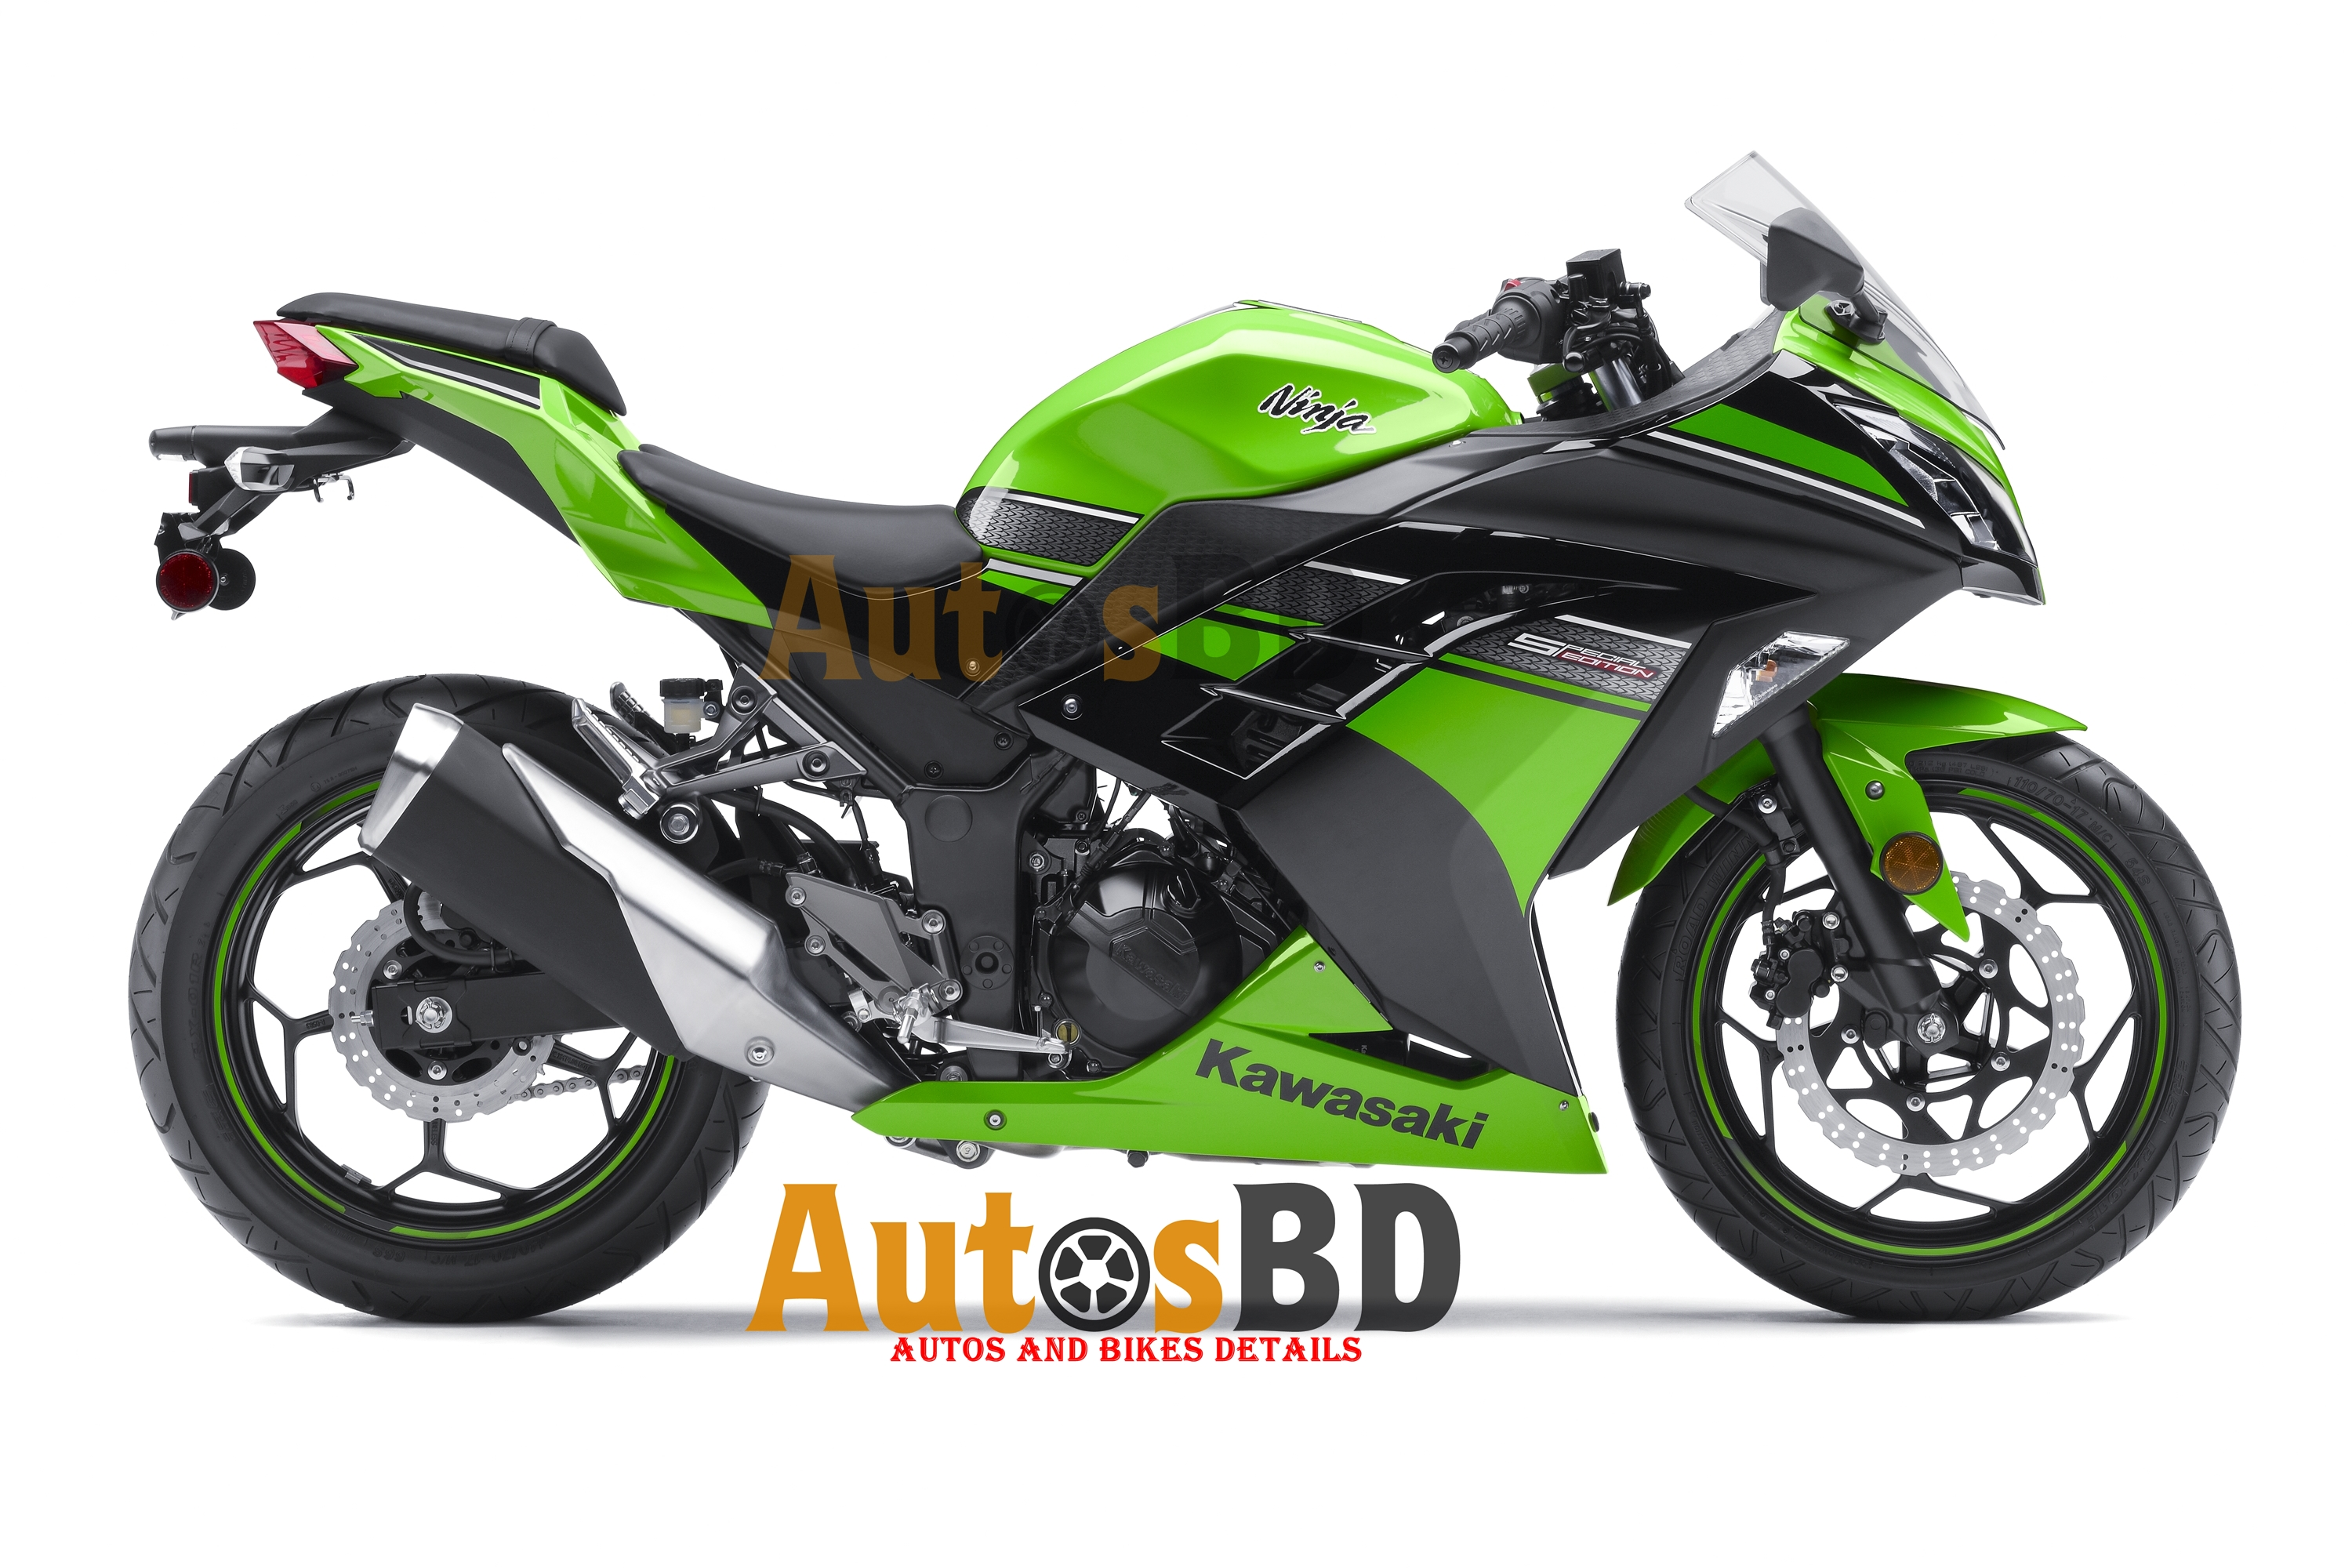 Kawasaki Ninja 300 Specification